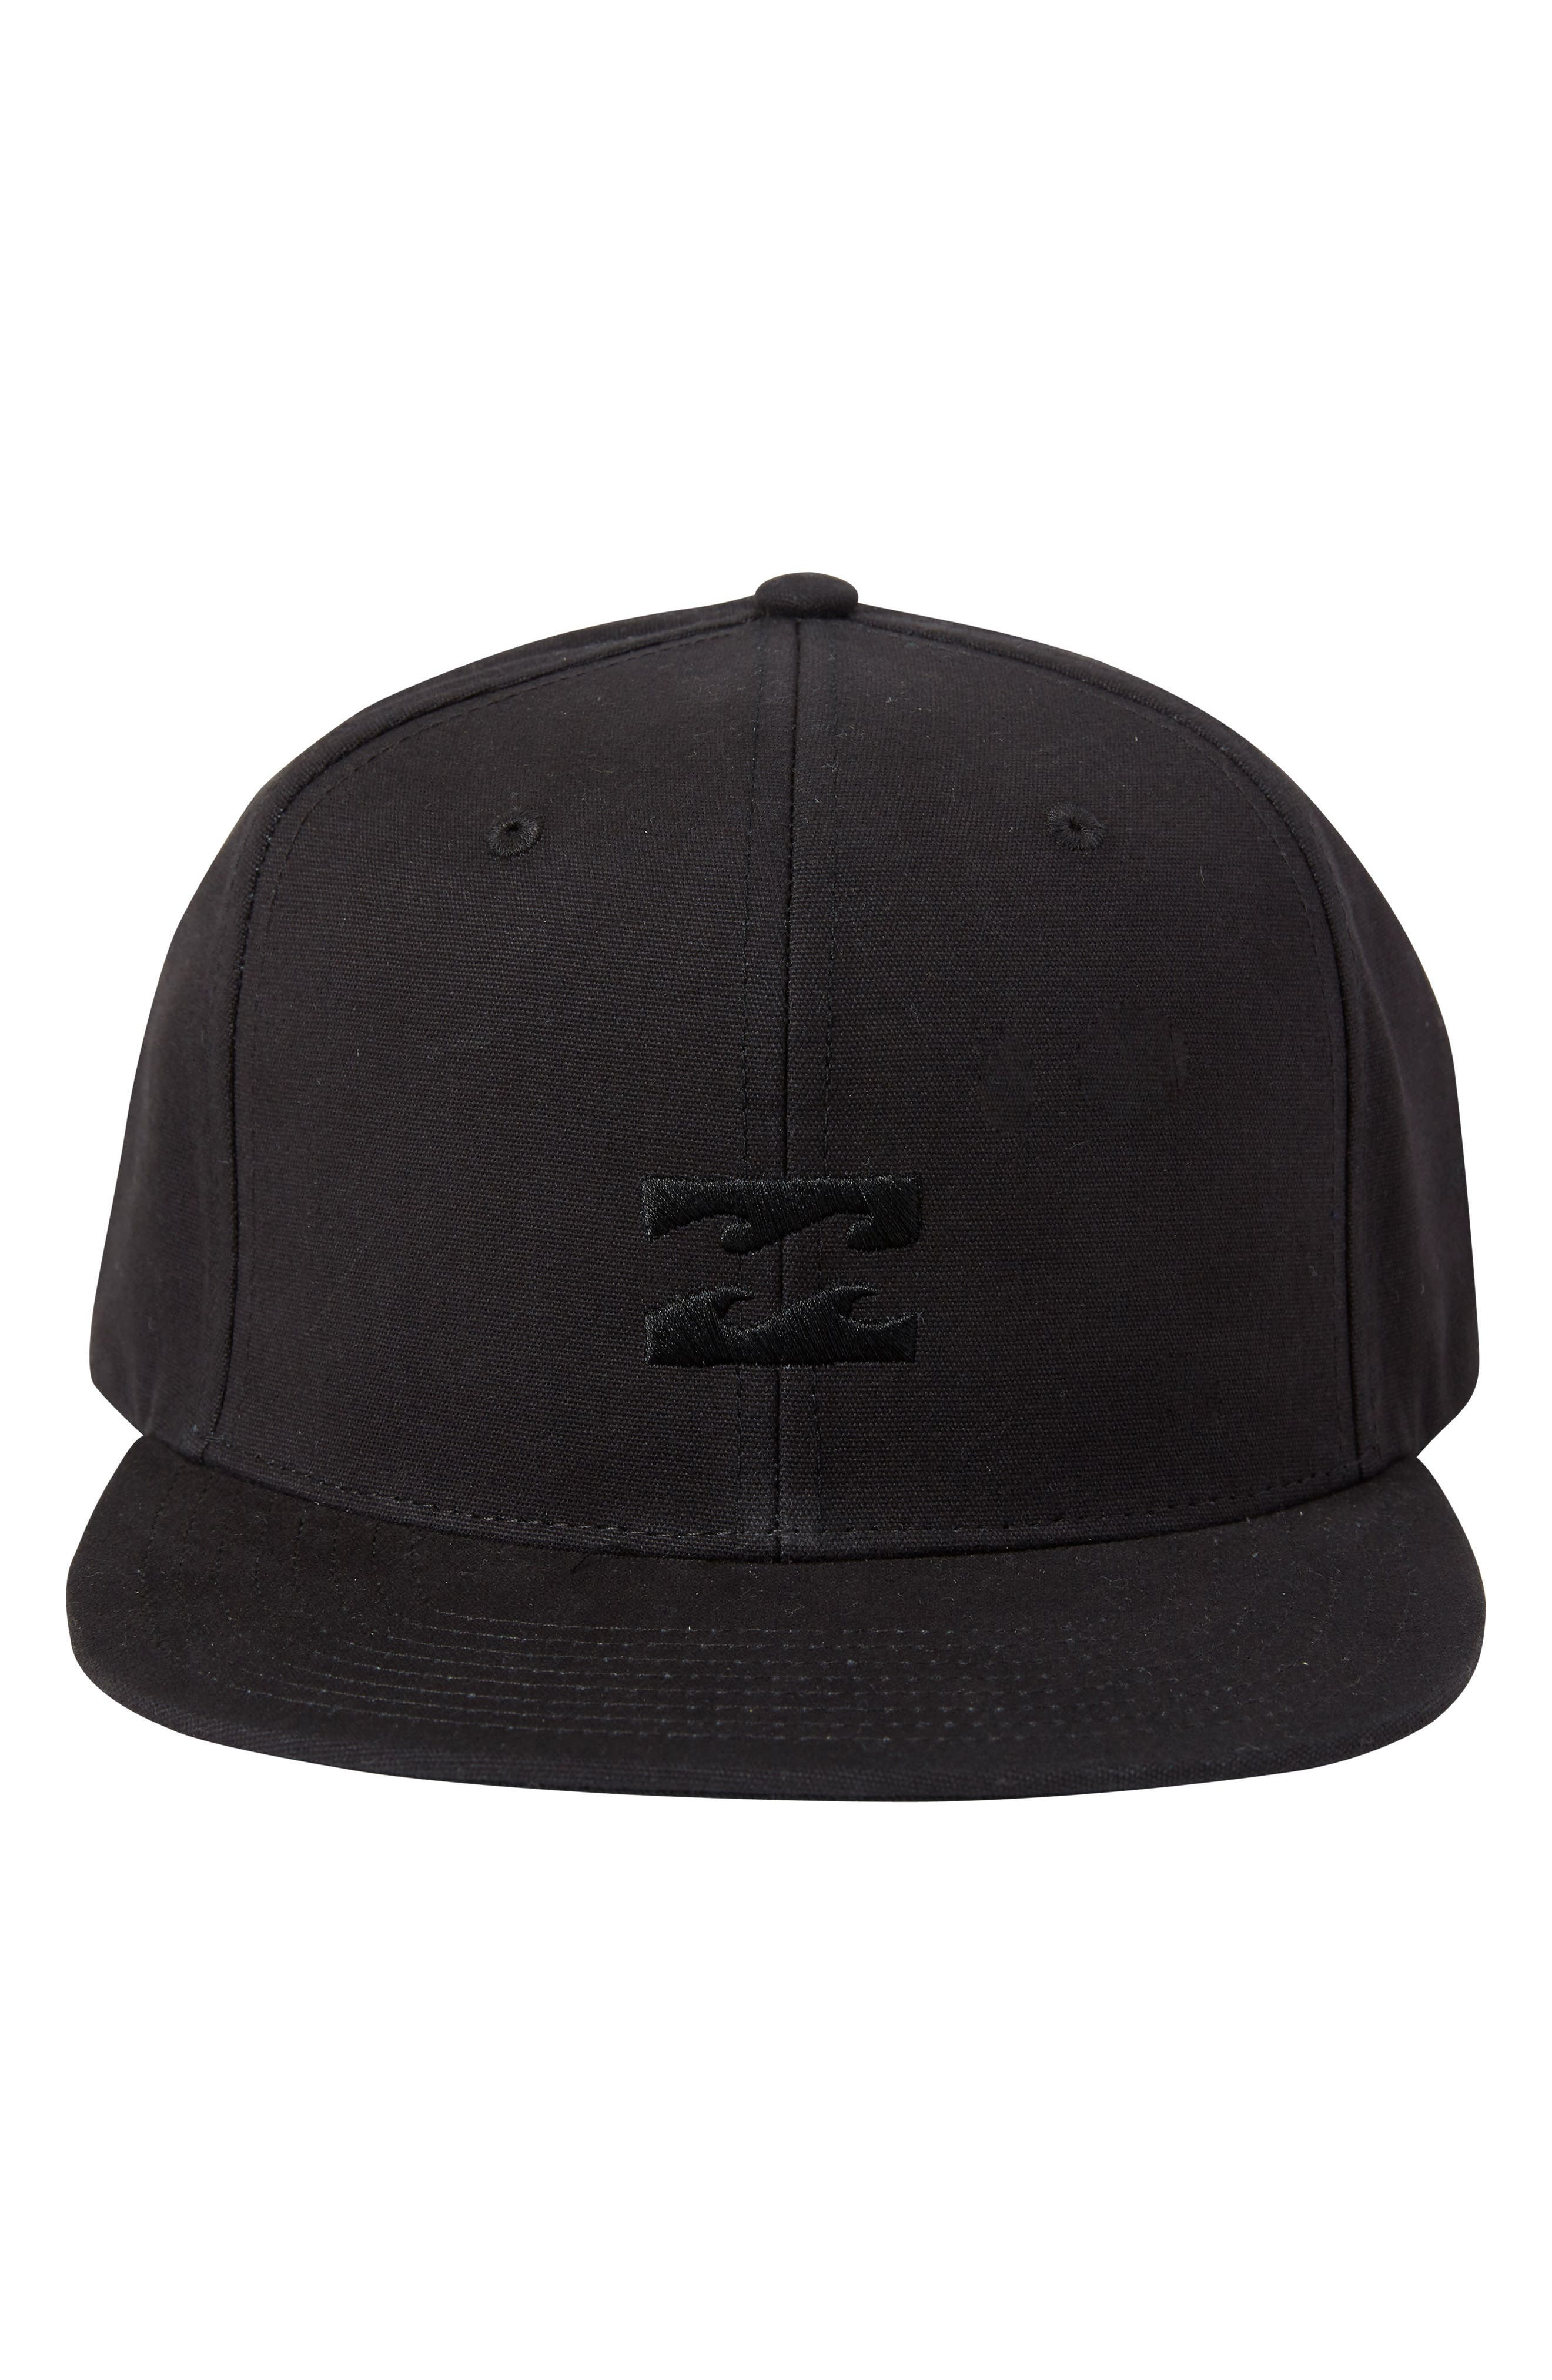 All Day Snapback Baseball Cap,                             Alternate thumbnail 3, color,                             Stealth